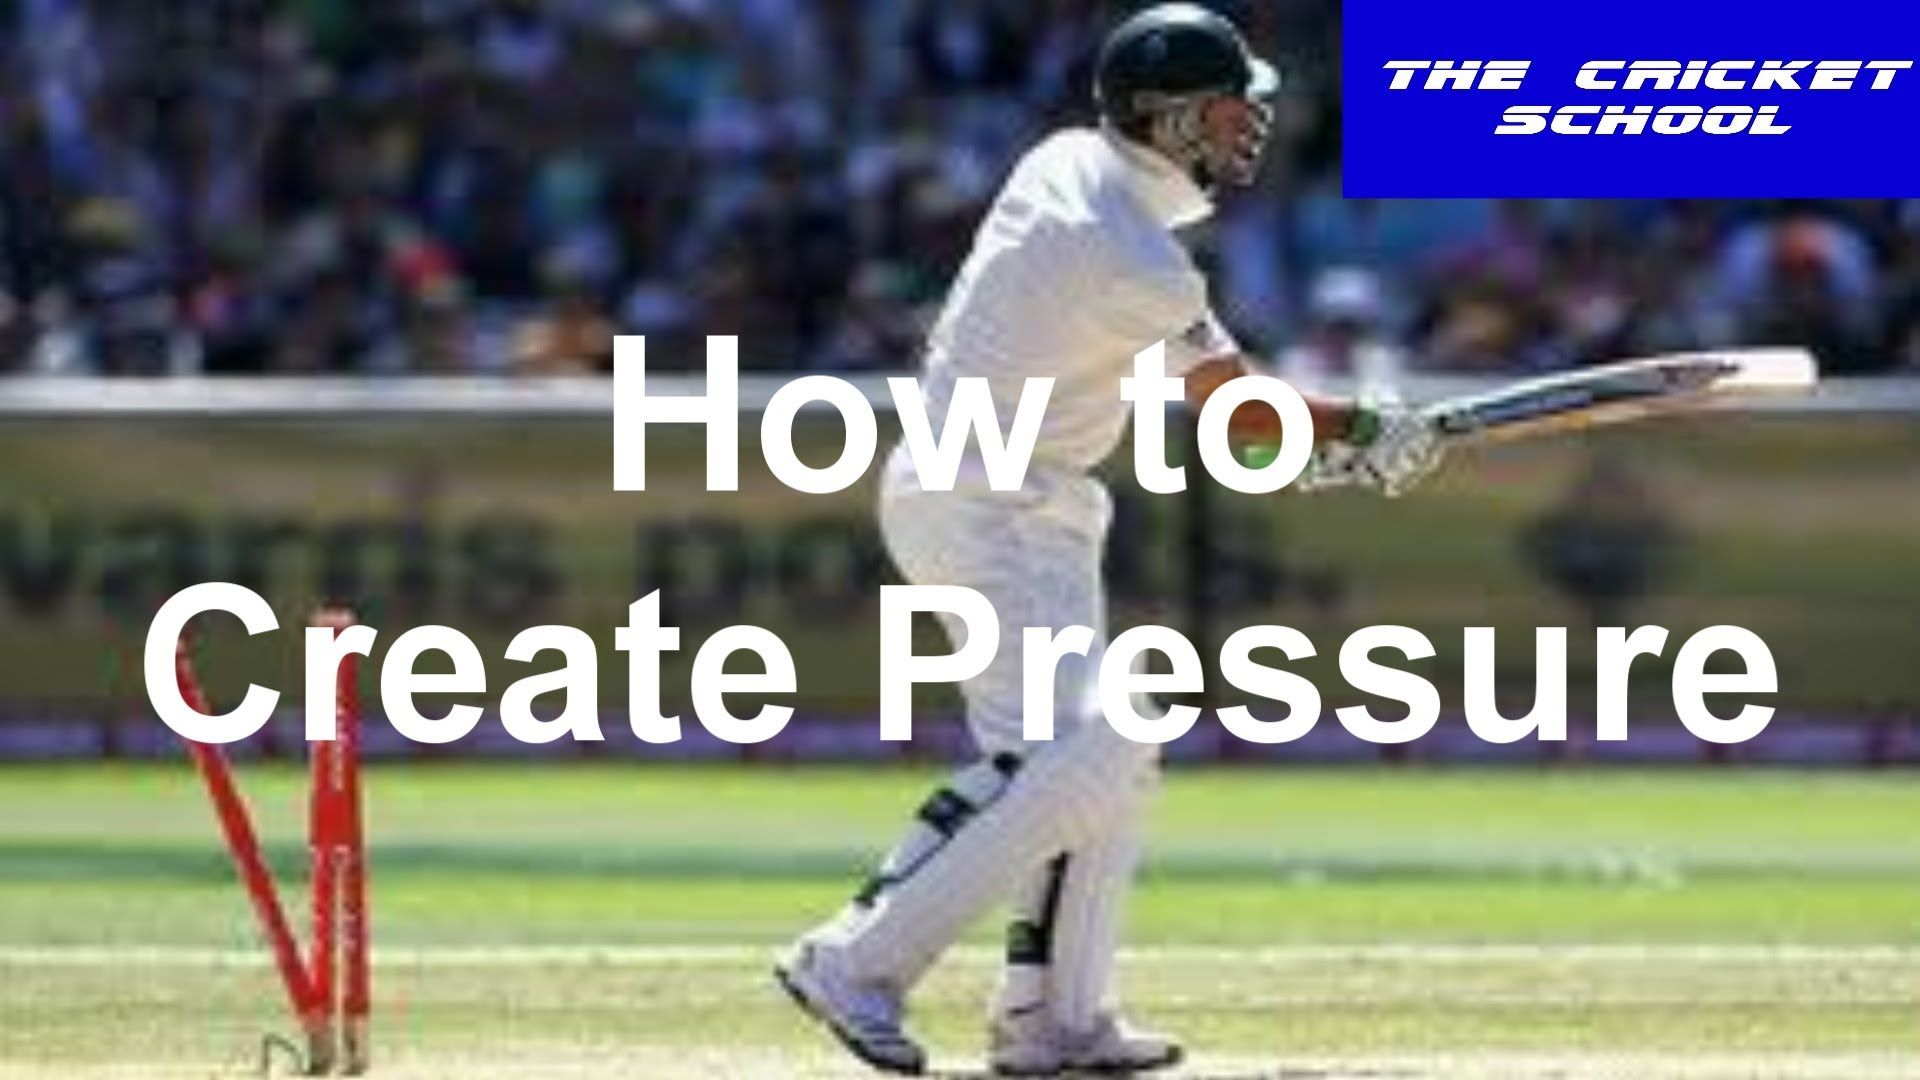 Hd Cricket Bowling Tips Lessons On How To Bowl To Create Pressure In Matches Cricket Bowling Tips Cricket Sport